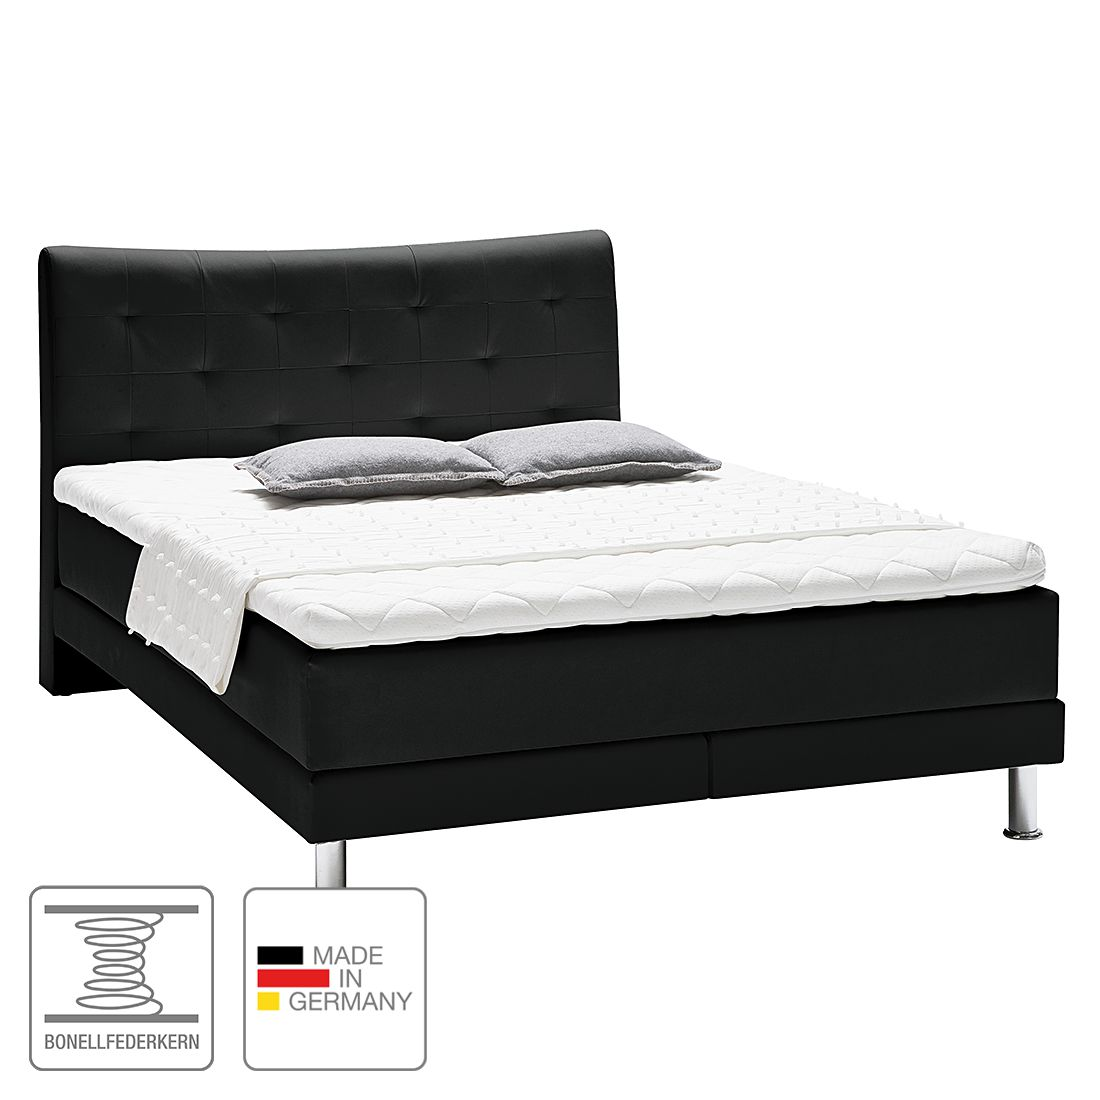 boxspringbett vega kunstleder 140 x 200cm h2 bis 80 kg kaltschaumtopper. Black Bedroom Furniture Sets. Home Design Ideas